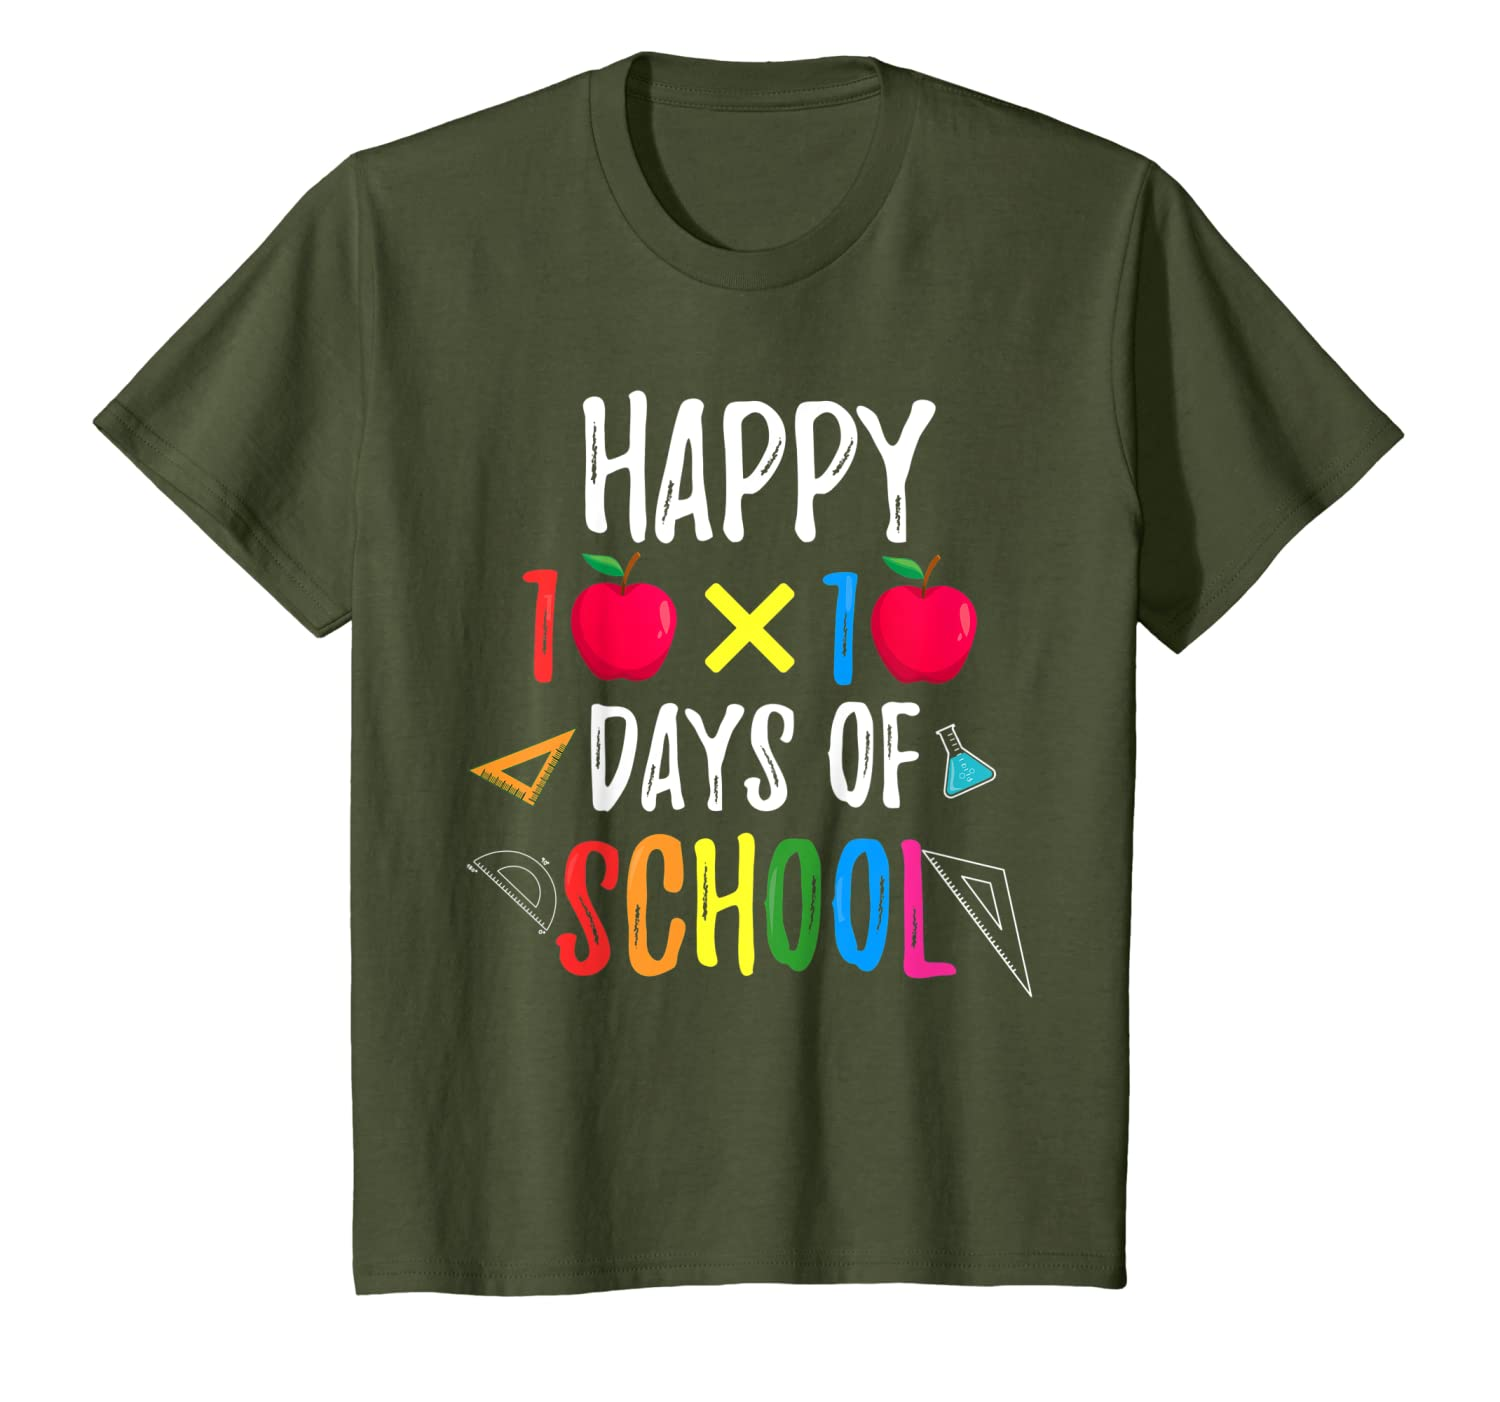 100 day of school shirt For Teacher & Student Kid cute gift T-Shirt